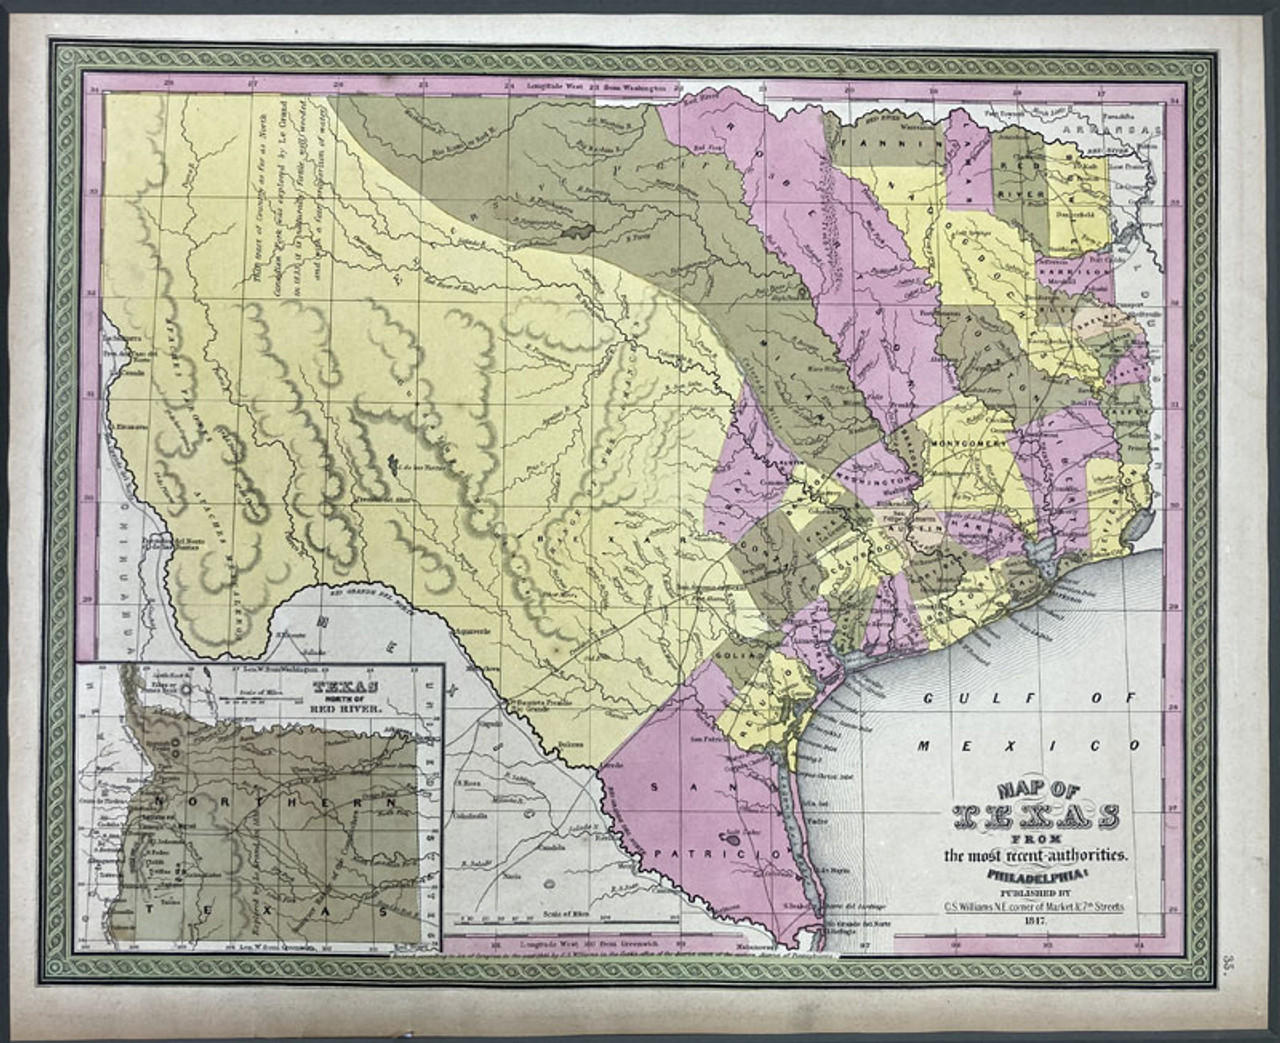 Map of Texas From the most recent authorities...